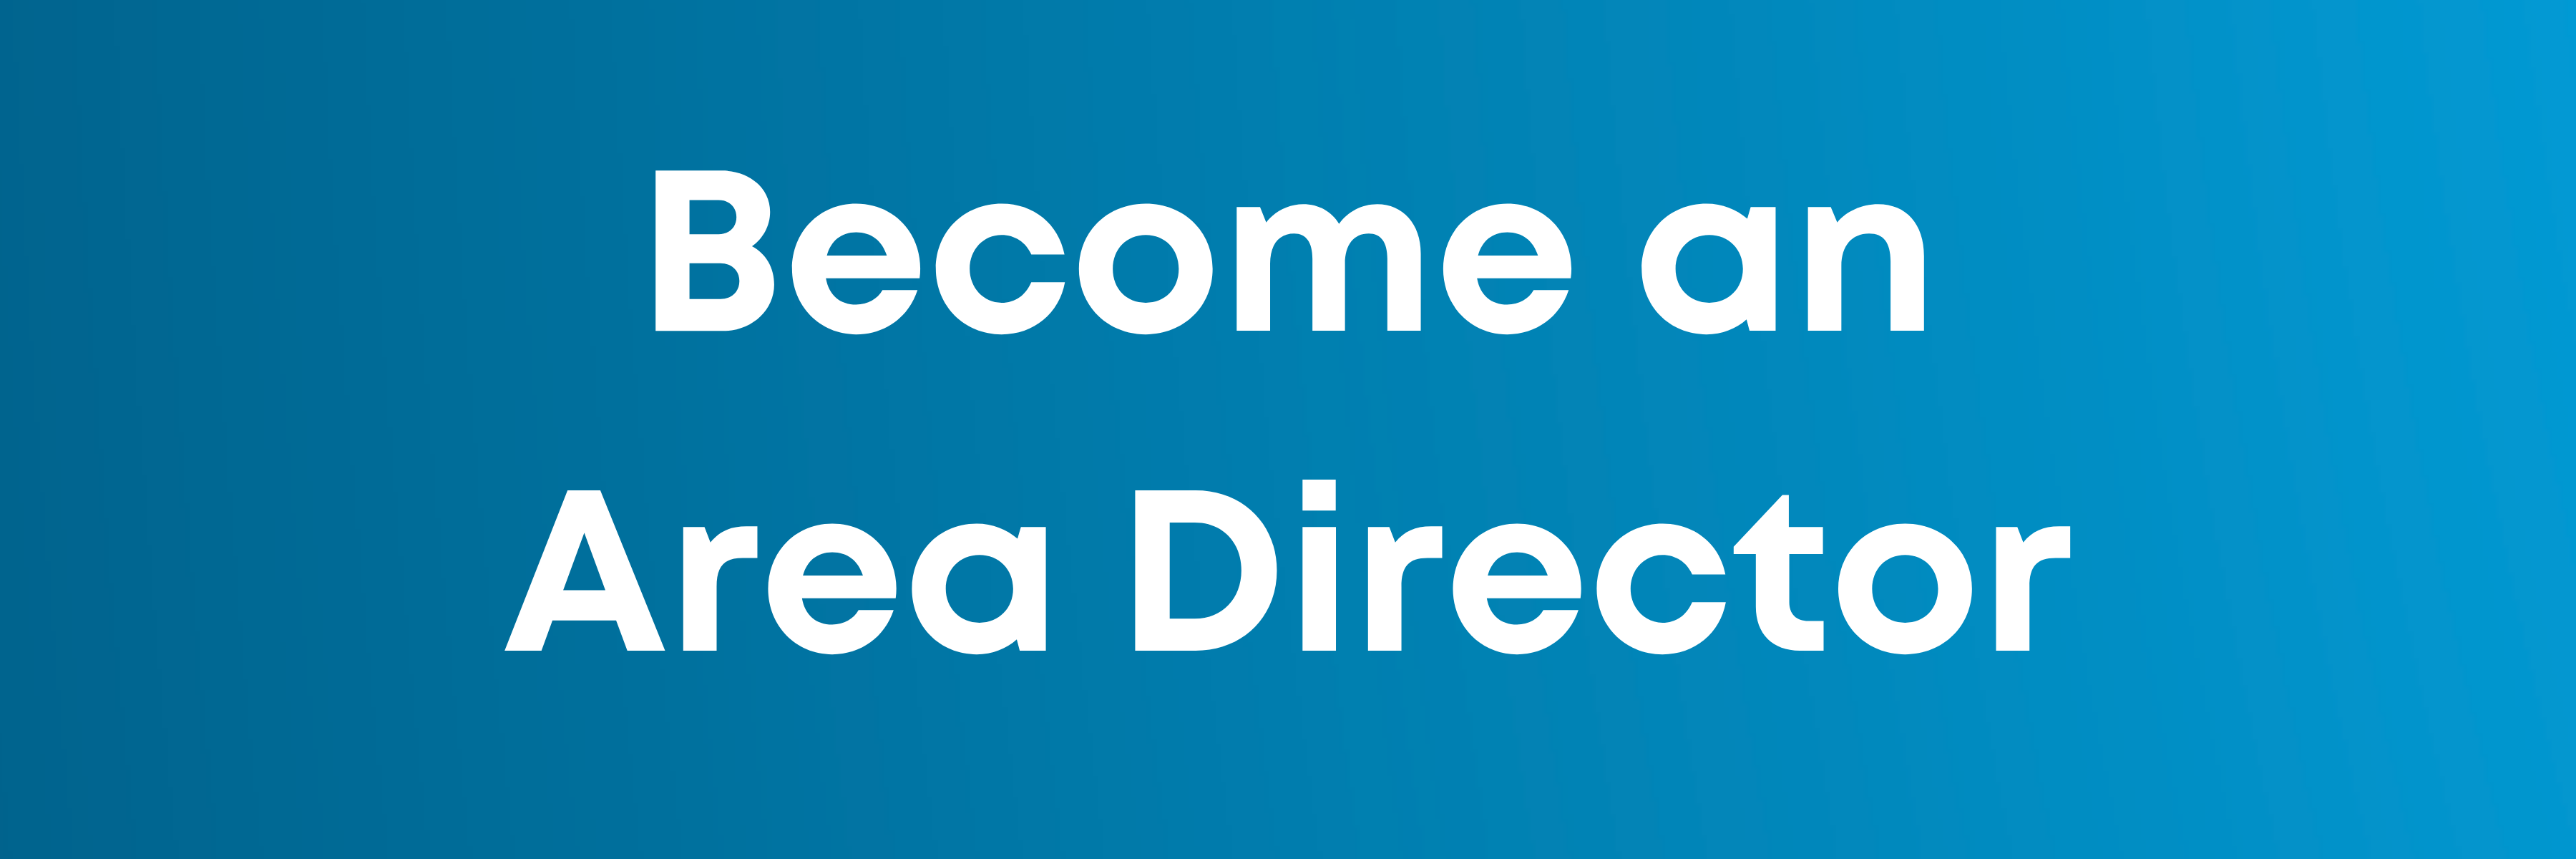 Become an Area Director button